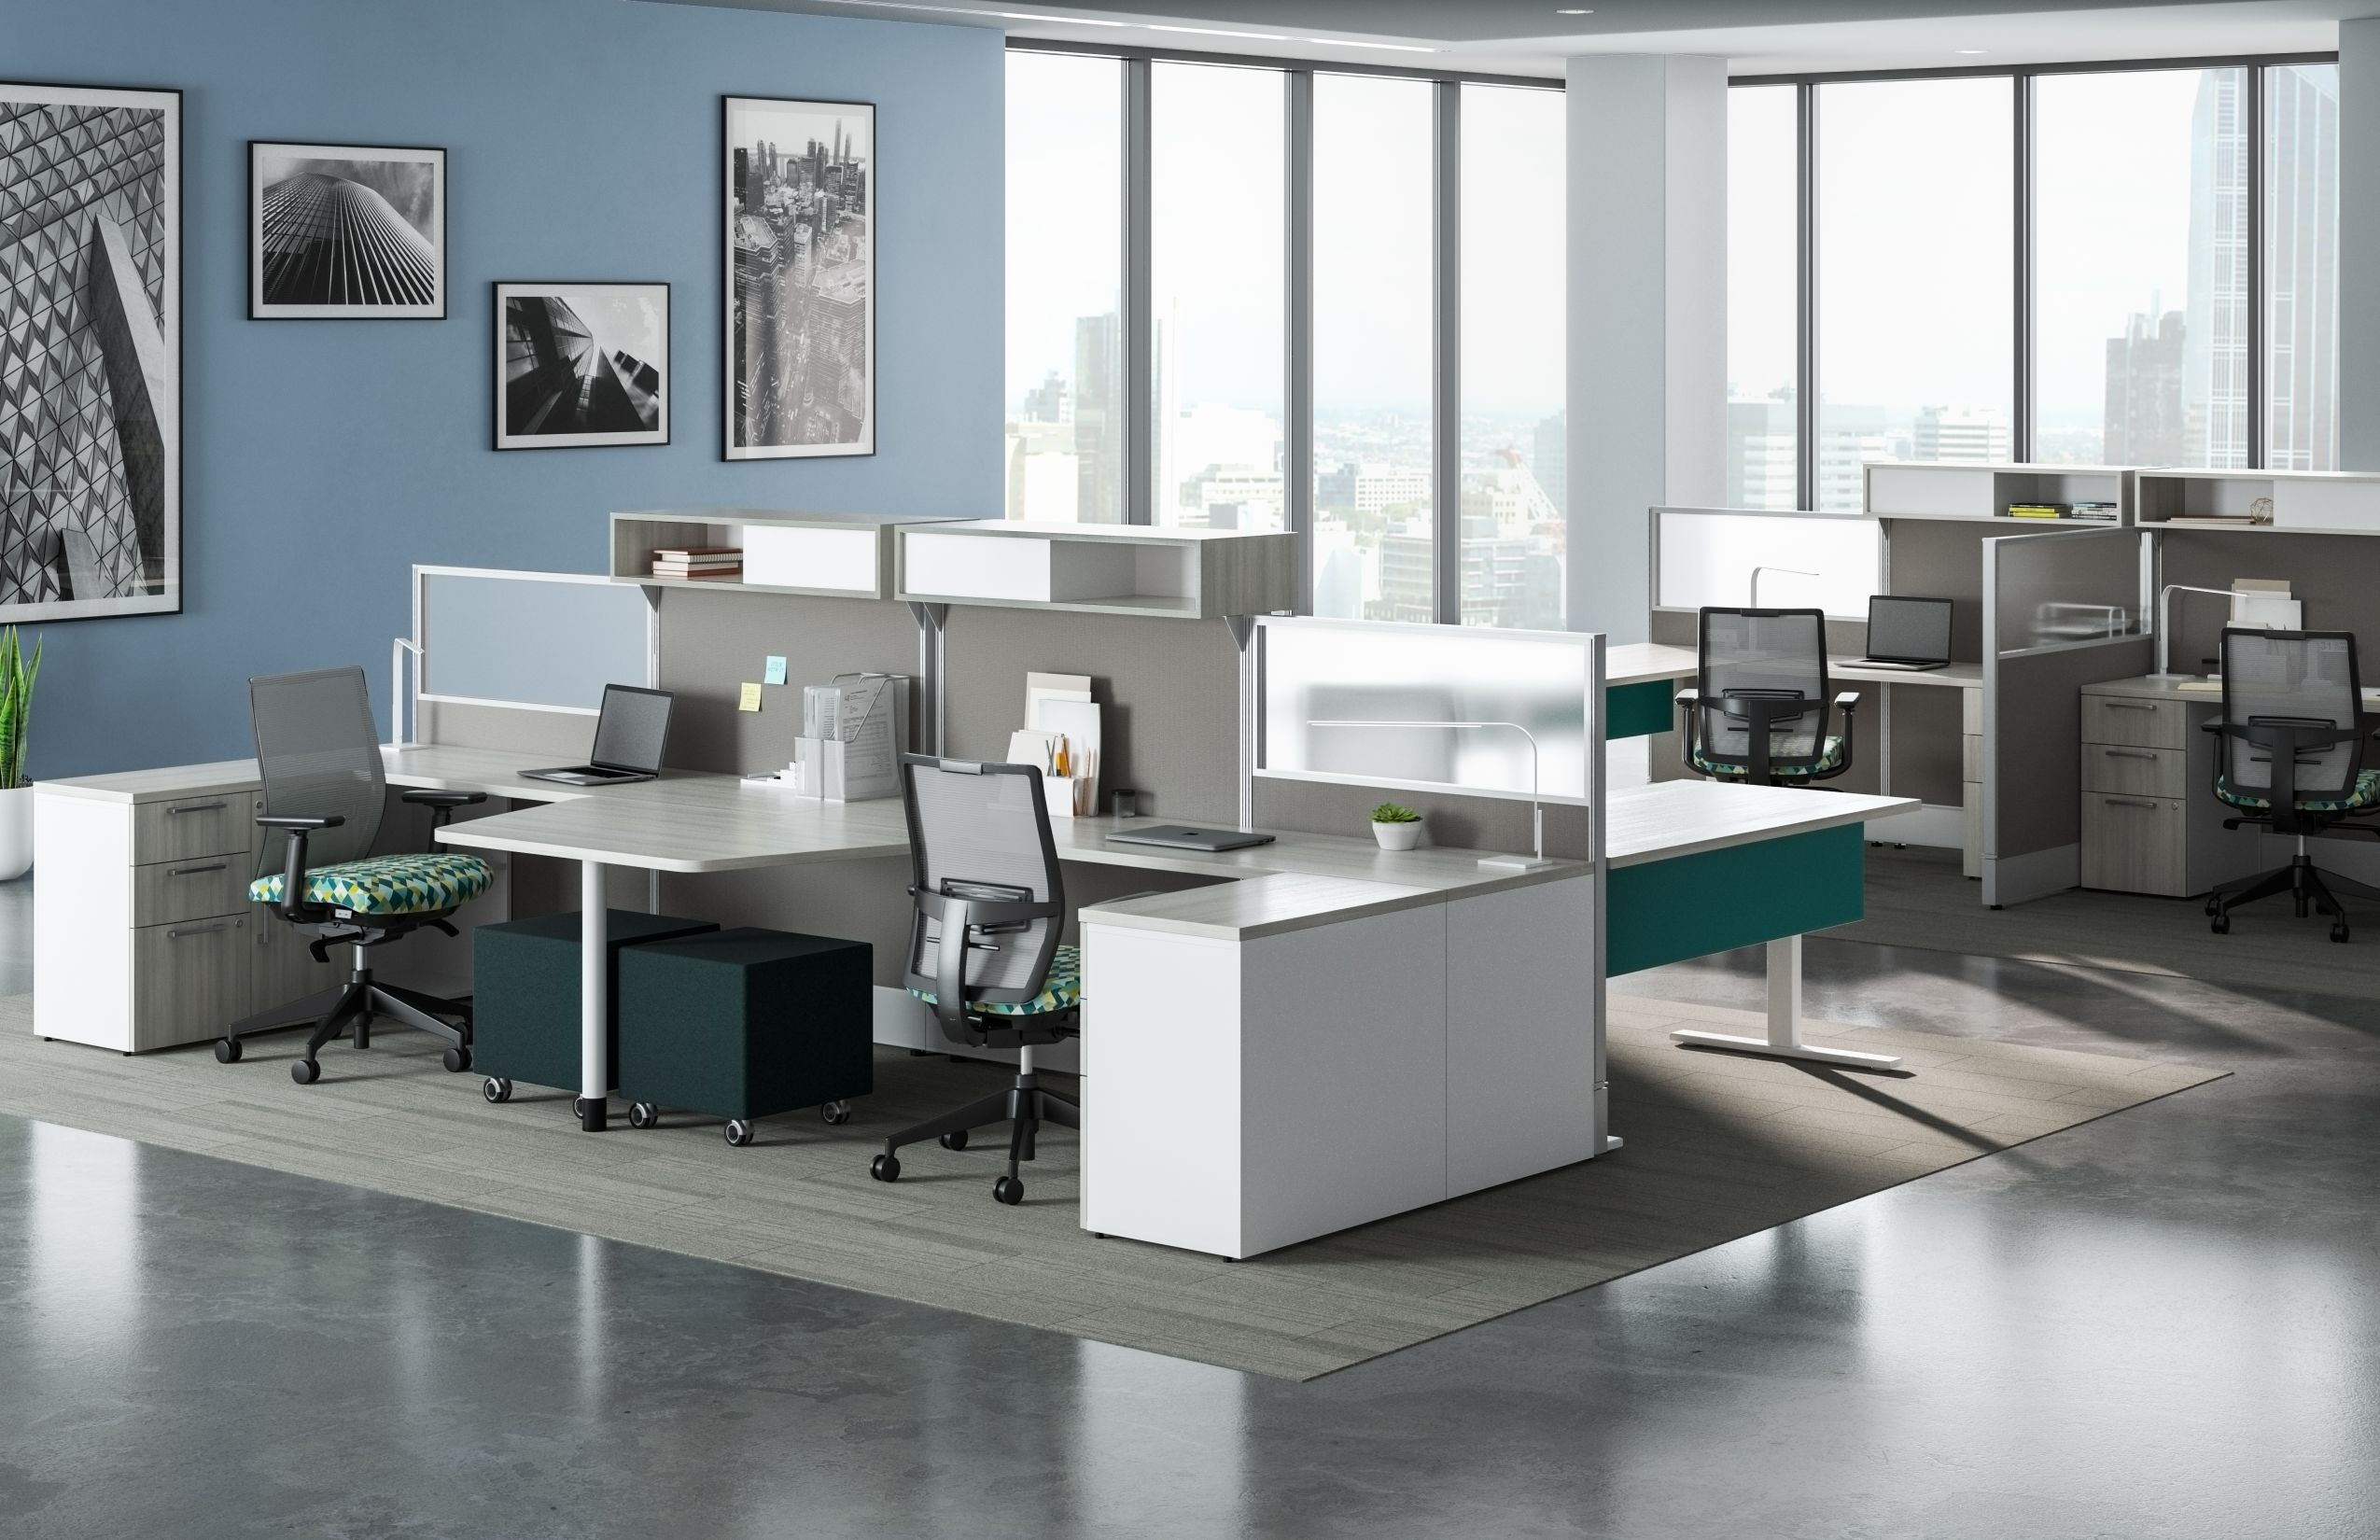 divi-with-keytop-worksurface-calibrate-storage-and-devens-task-seating_md